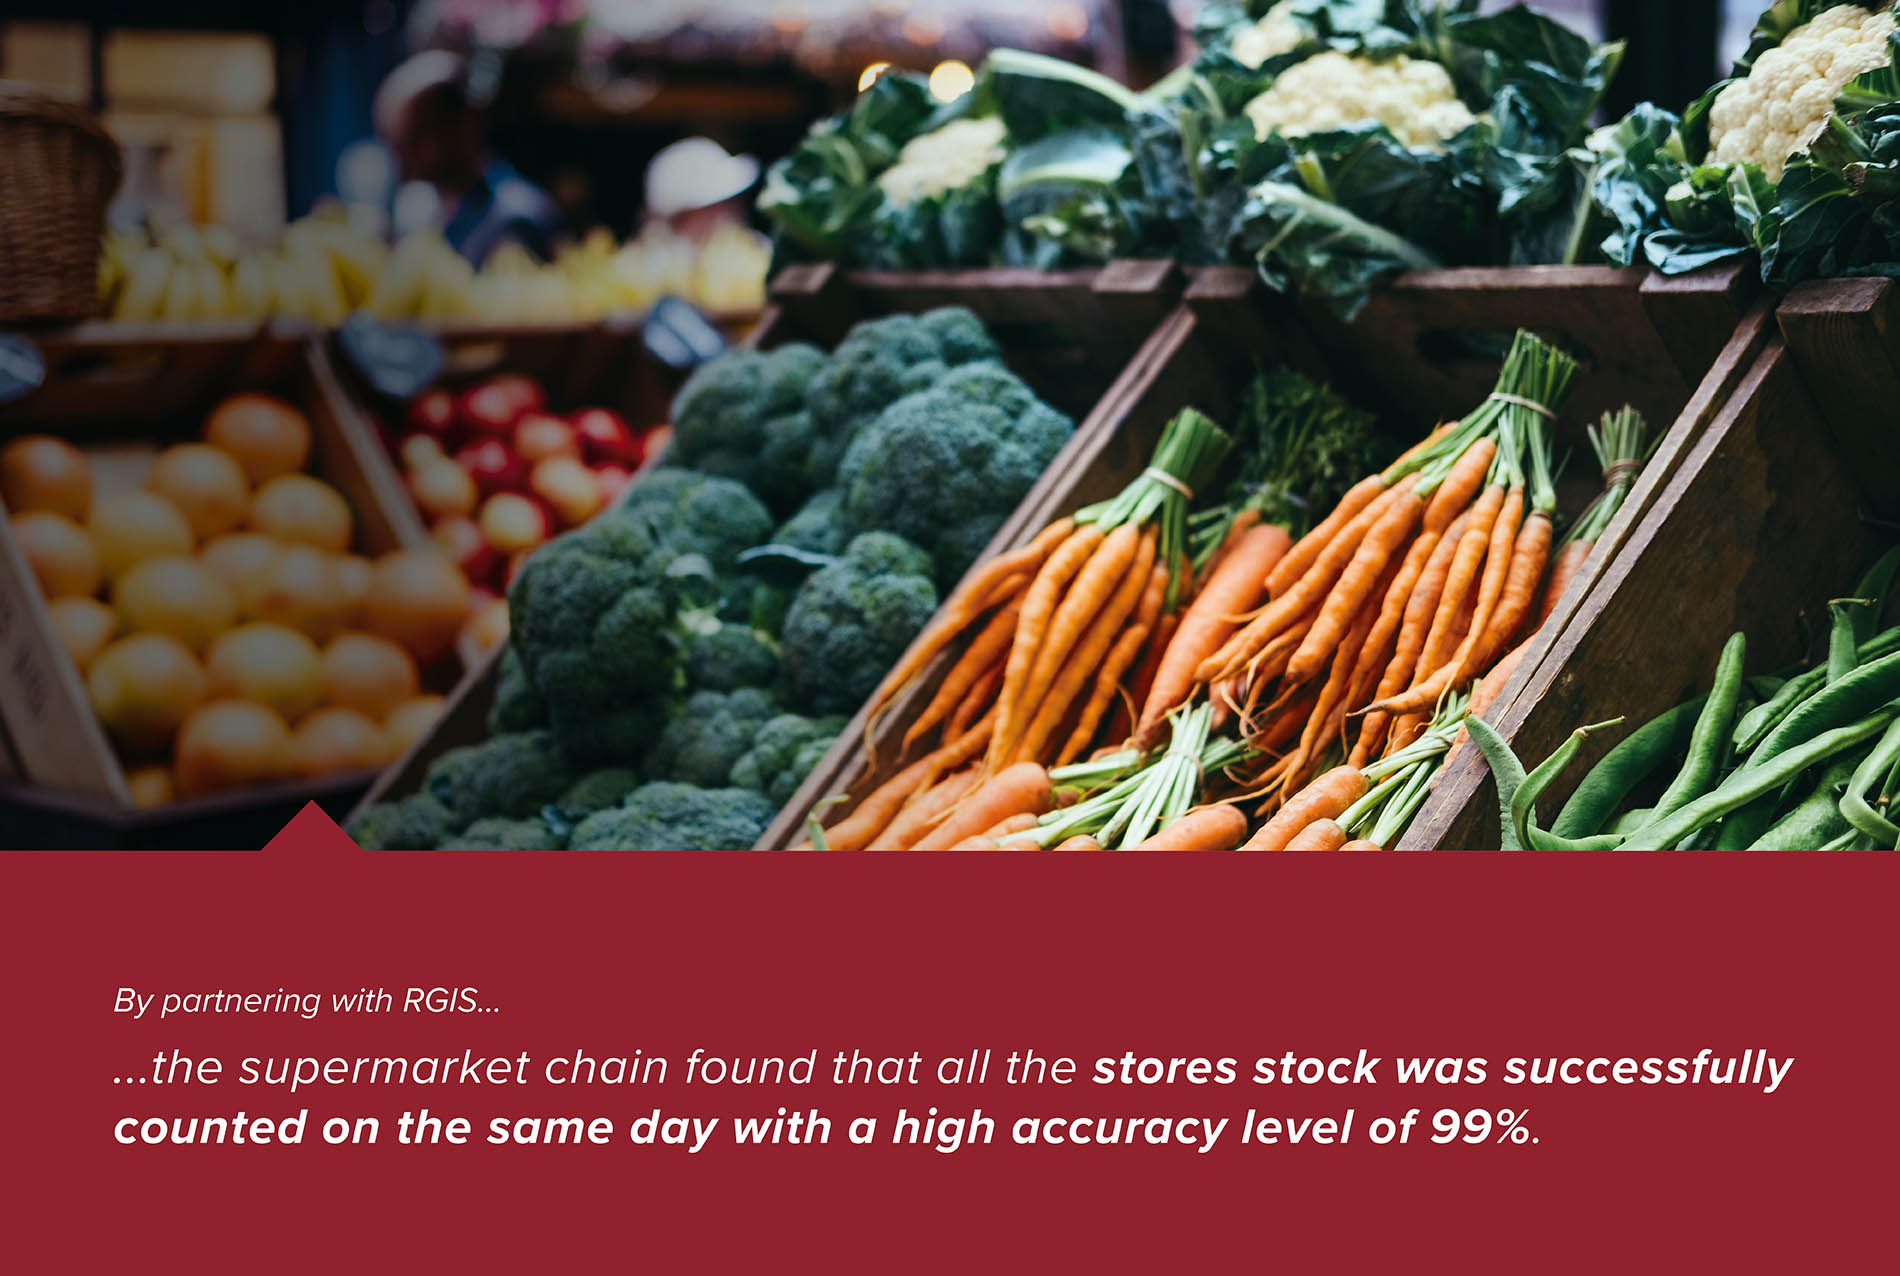 Supermarket Chain Store Simultaneous Stock Counts